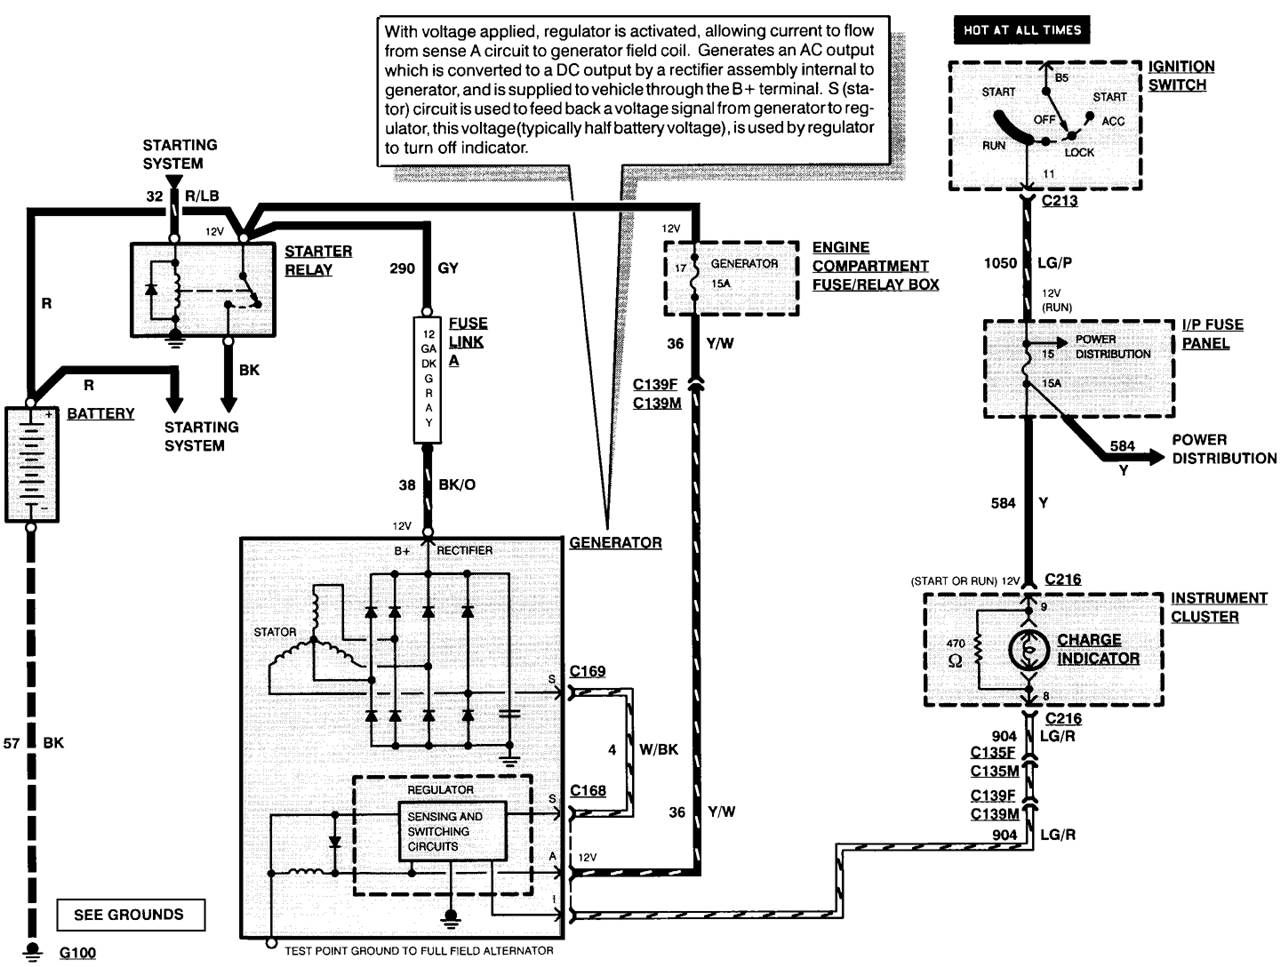 2003 Ford Alternator Wiring Diagram Electrical Schematic Wiring